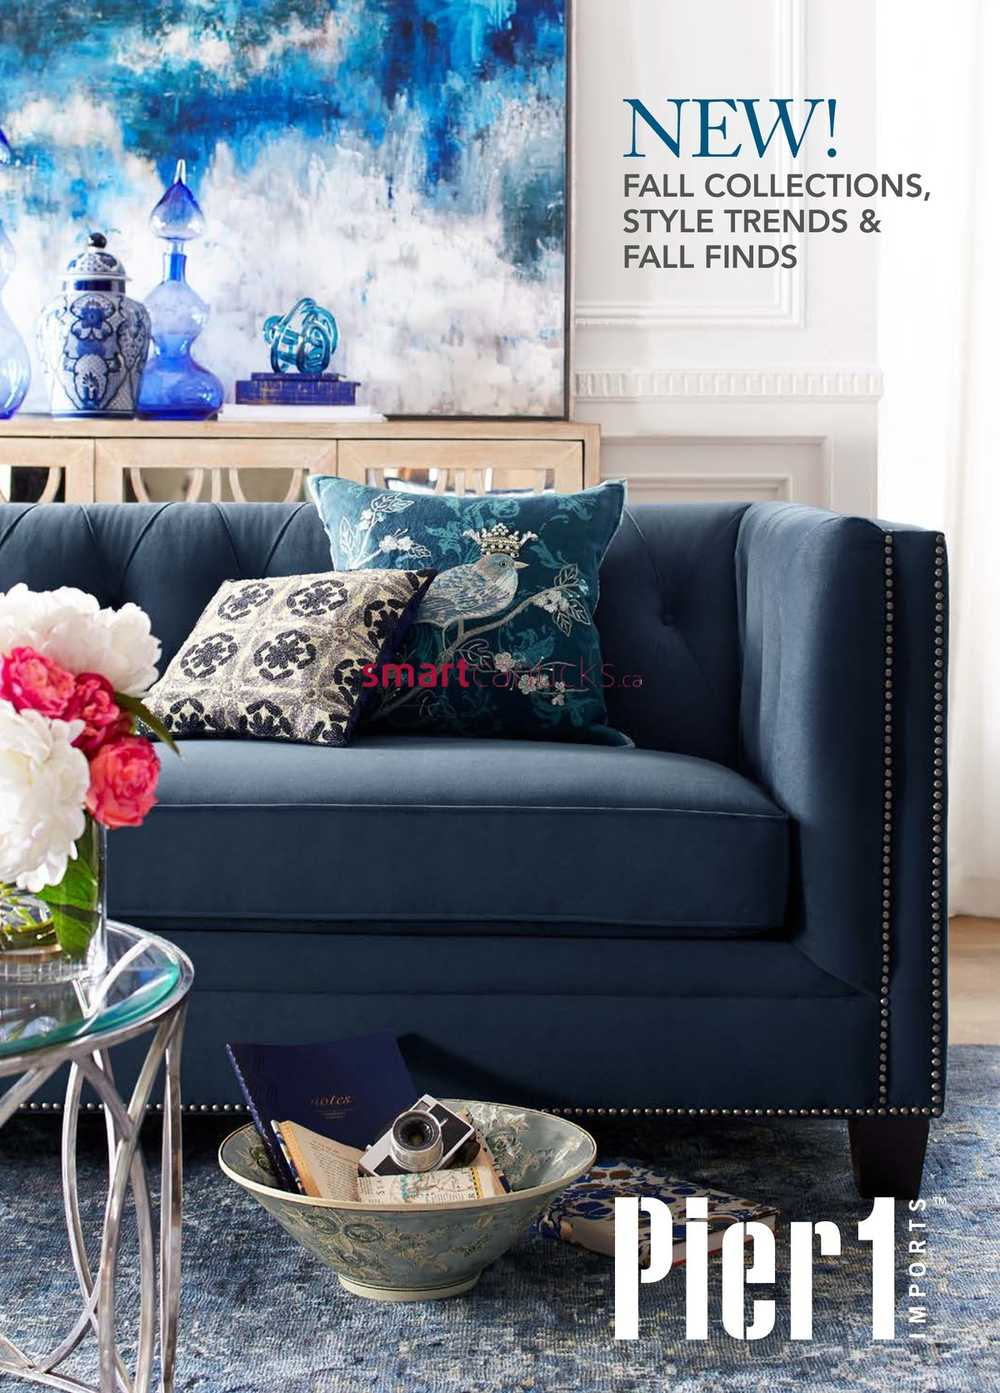 Pier 1 Imports Flyer July 31 to August 23. Pier 1 Imports Canada Flyers